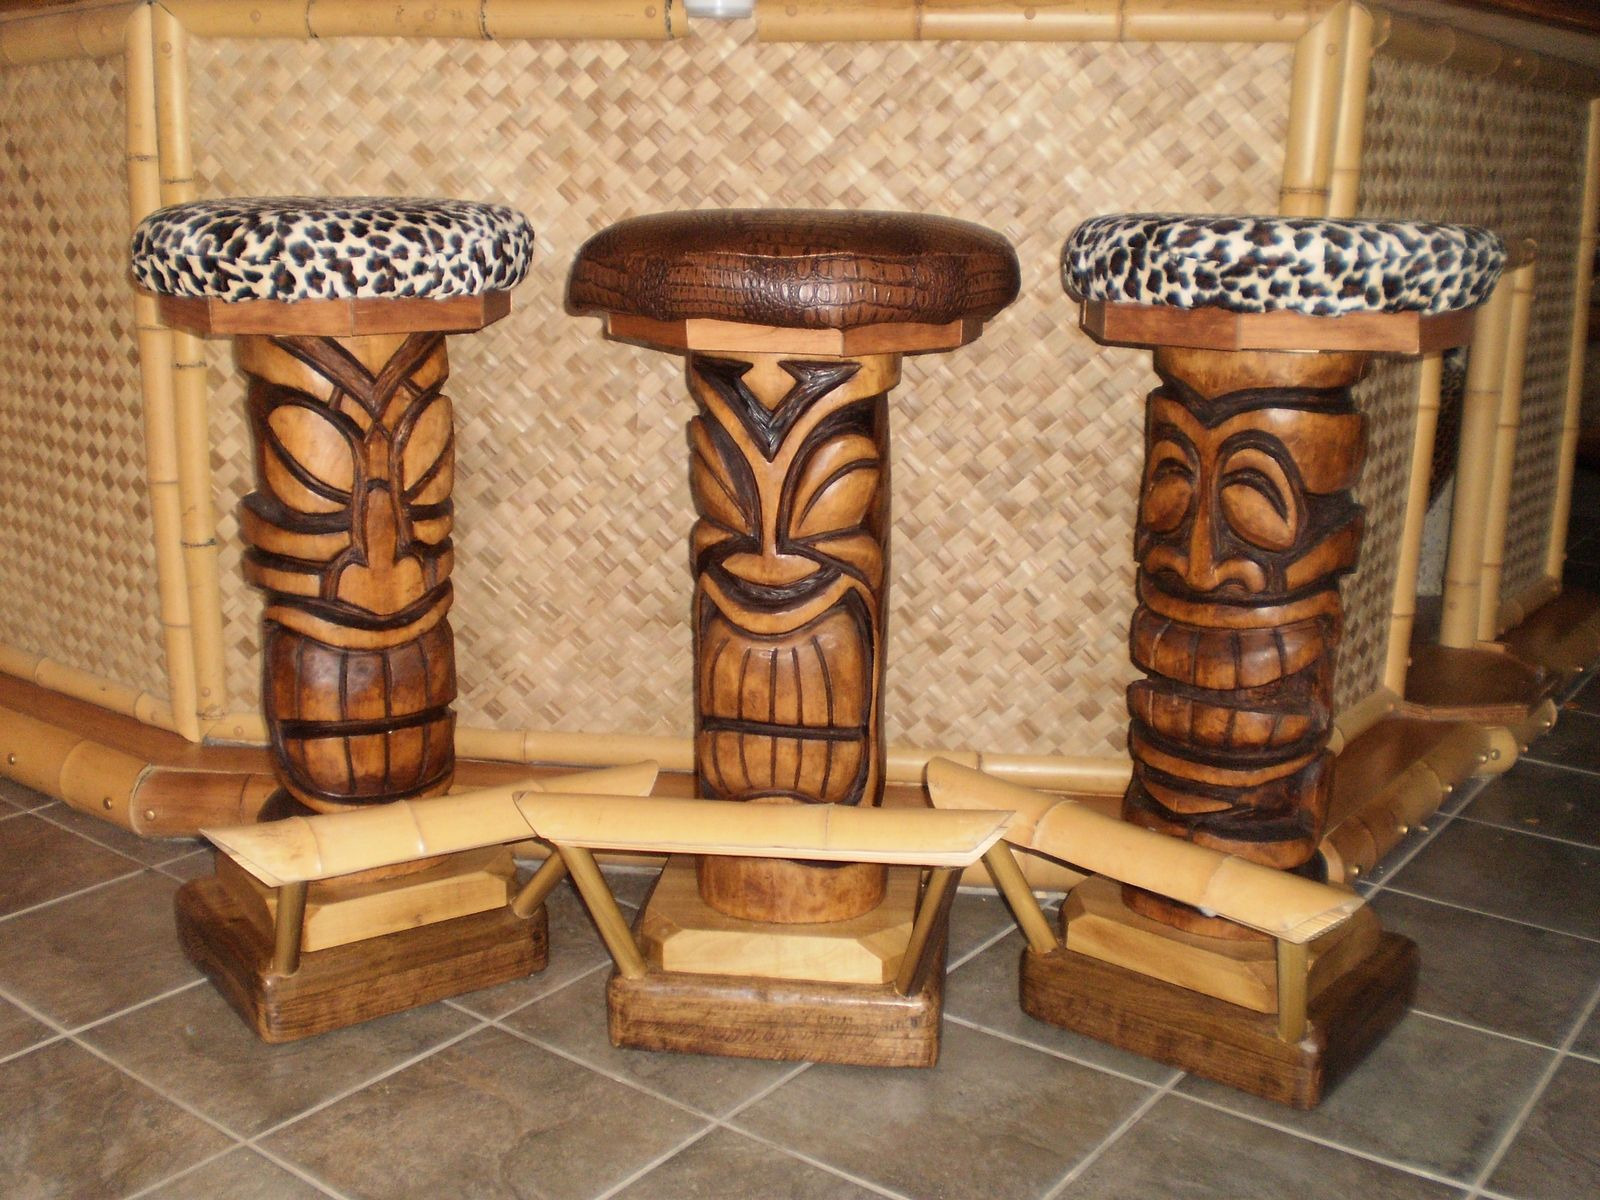 Handmade Custom Tiki Bar Stools For Business by Belly Up Pub Hub | CustomMade.com